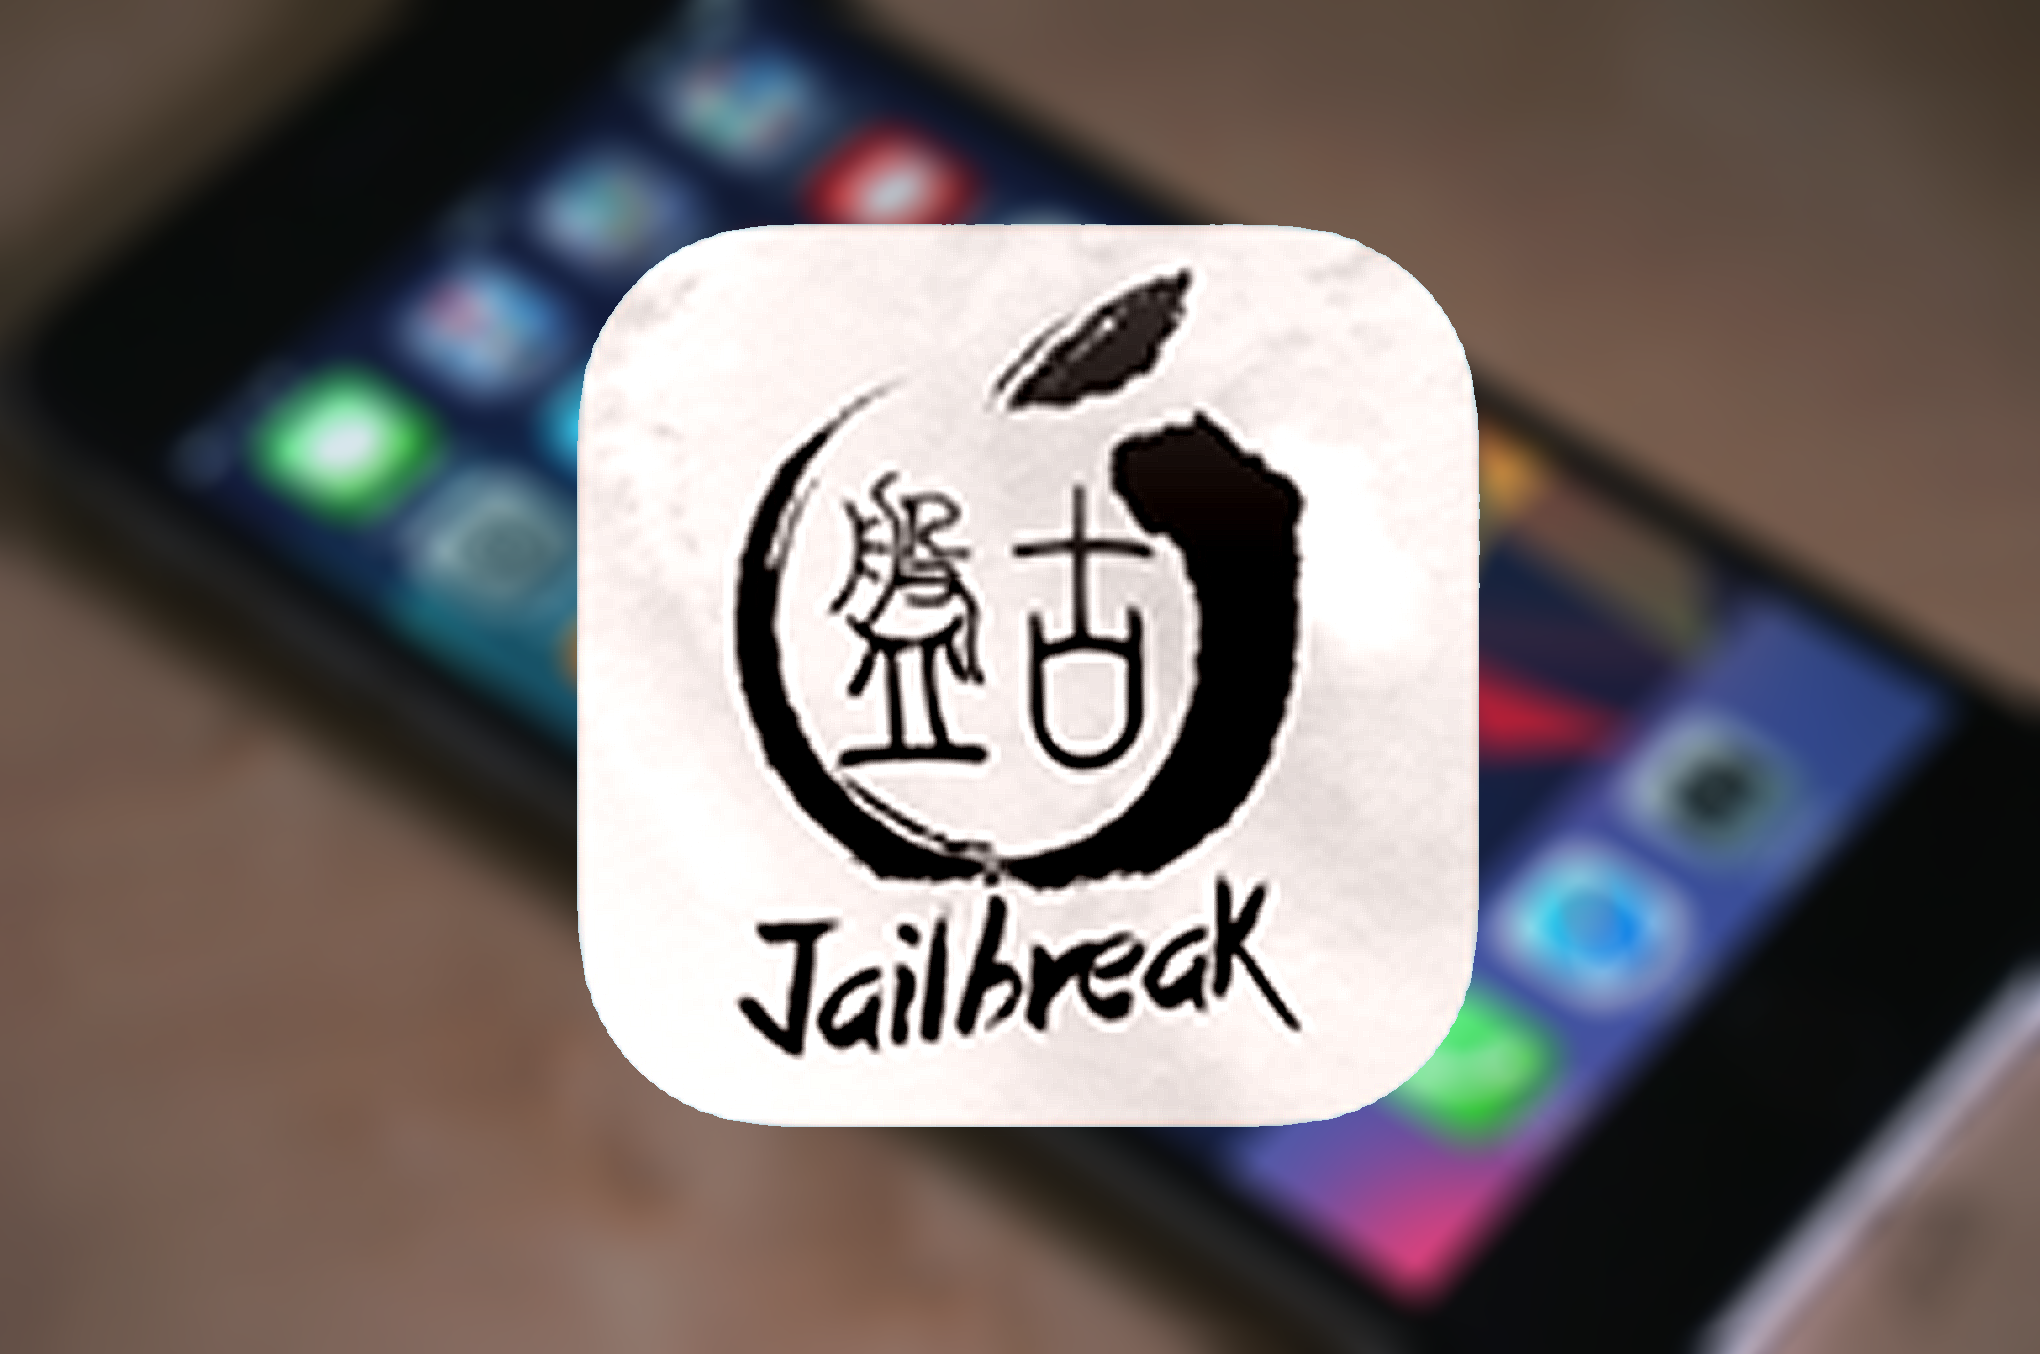 How to Get The 1 Year Pangu Jailbreak App Certificate and